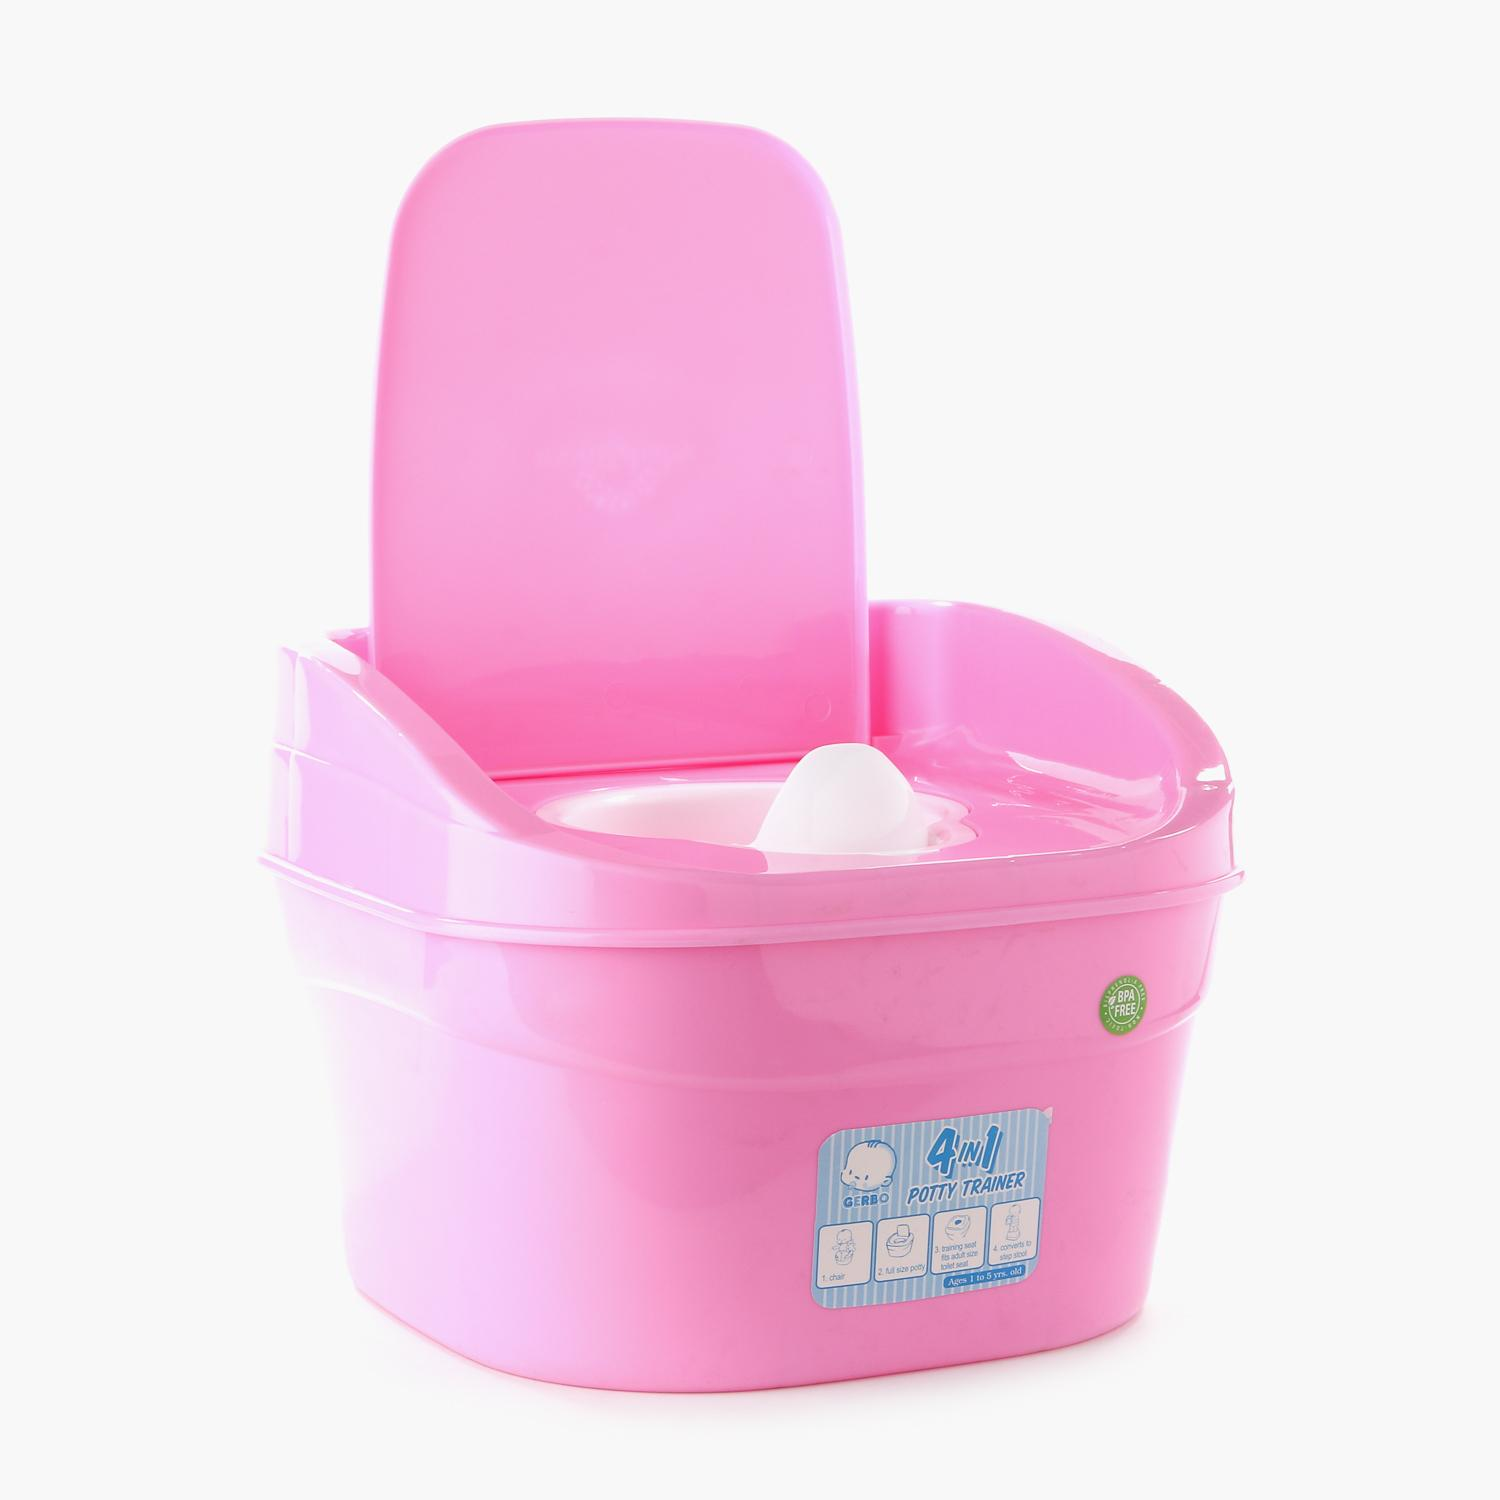 Gerbo 4-in-1 Potty Trainer (Pink)